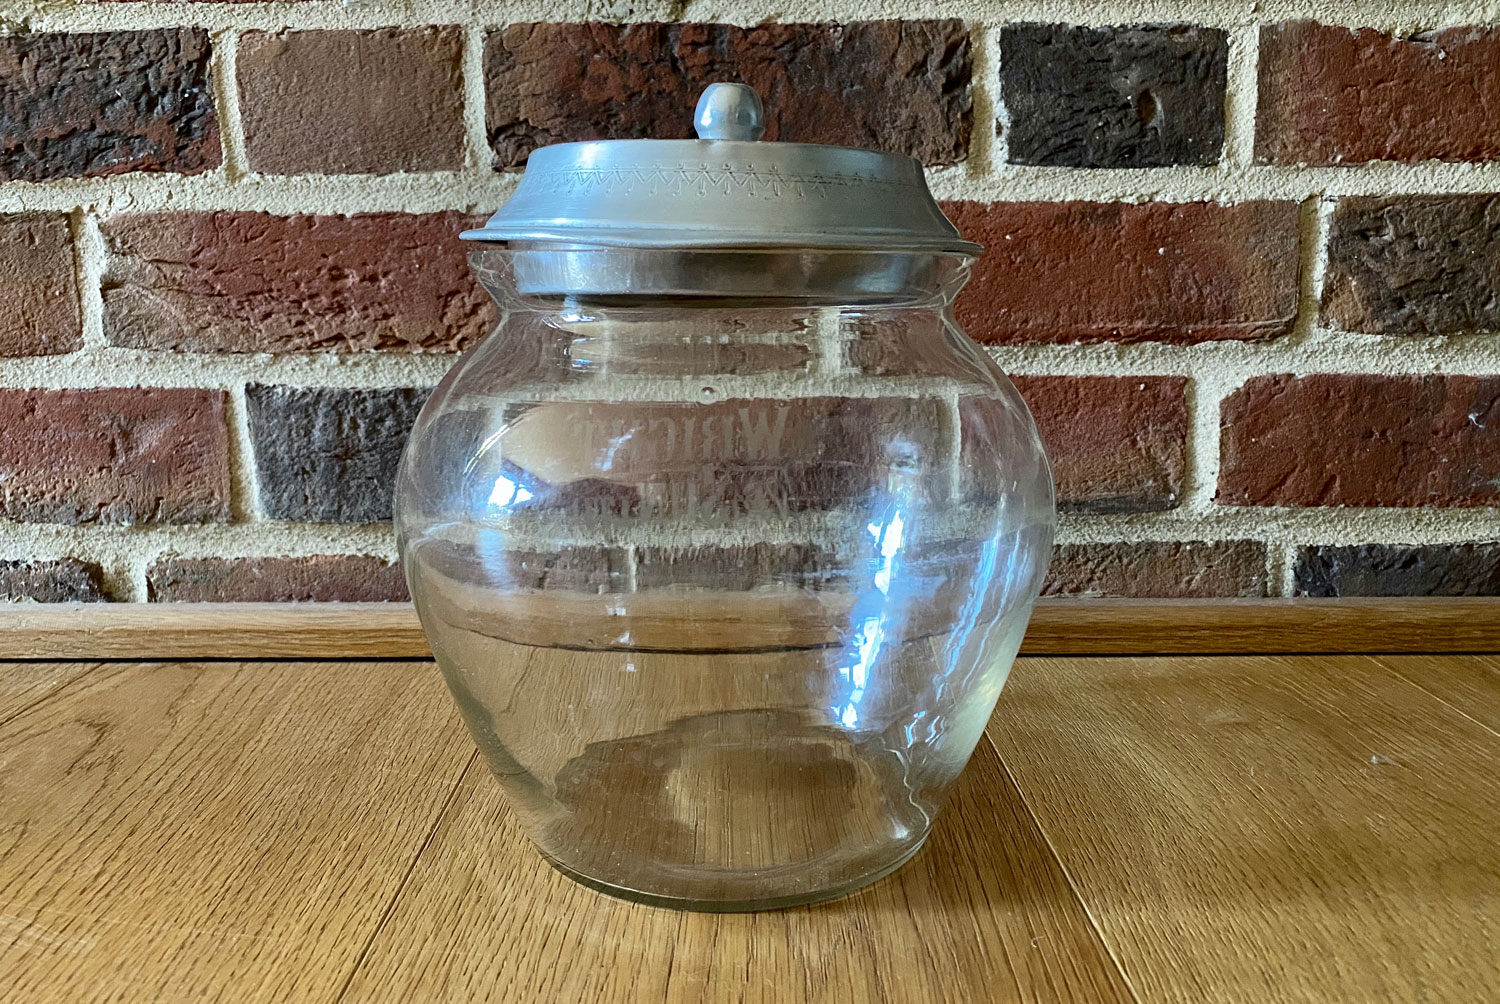 rare edwardian 1920s rounded round shaped size wright sons glass advertising biscuit display jar